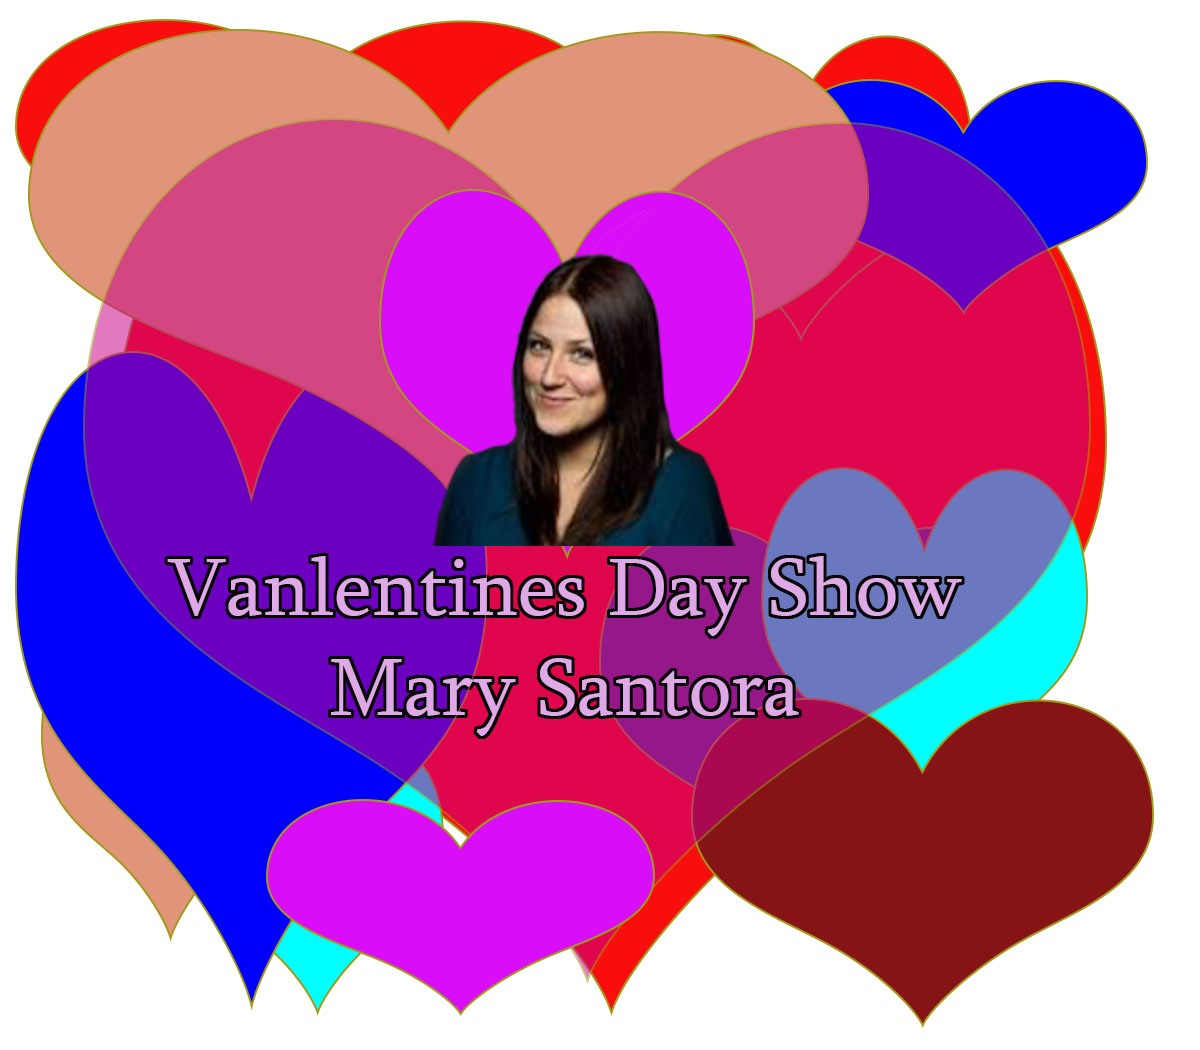 Valentines with Mary Santora 9:30 Show  on Feb 14, 21:30@Funny Stop Comedy Club - Buy tickets and Get information on Funny Stop funnystop.online